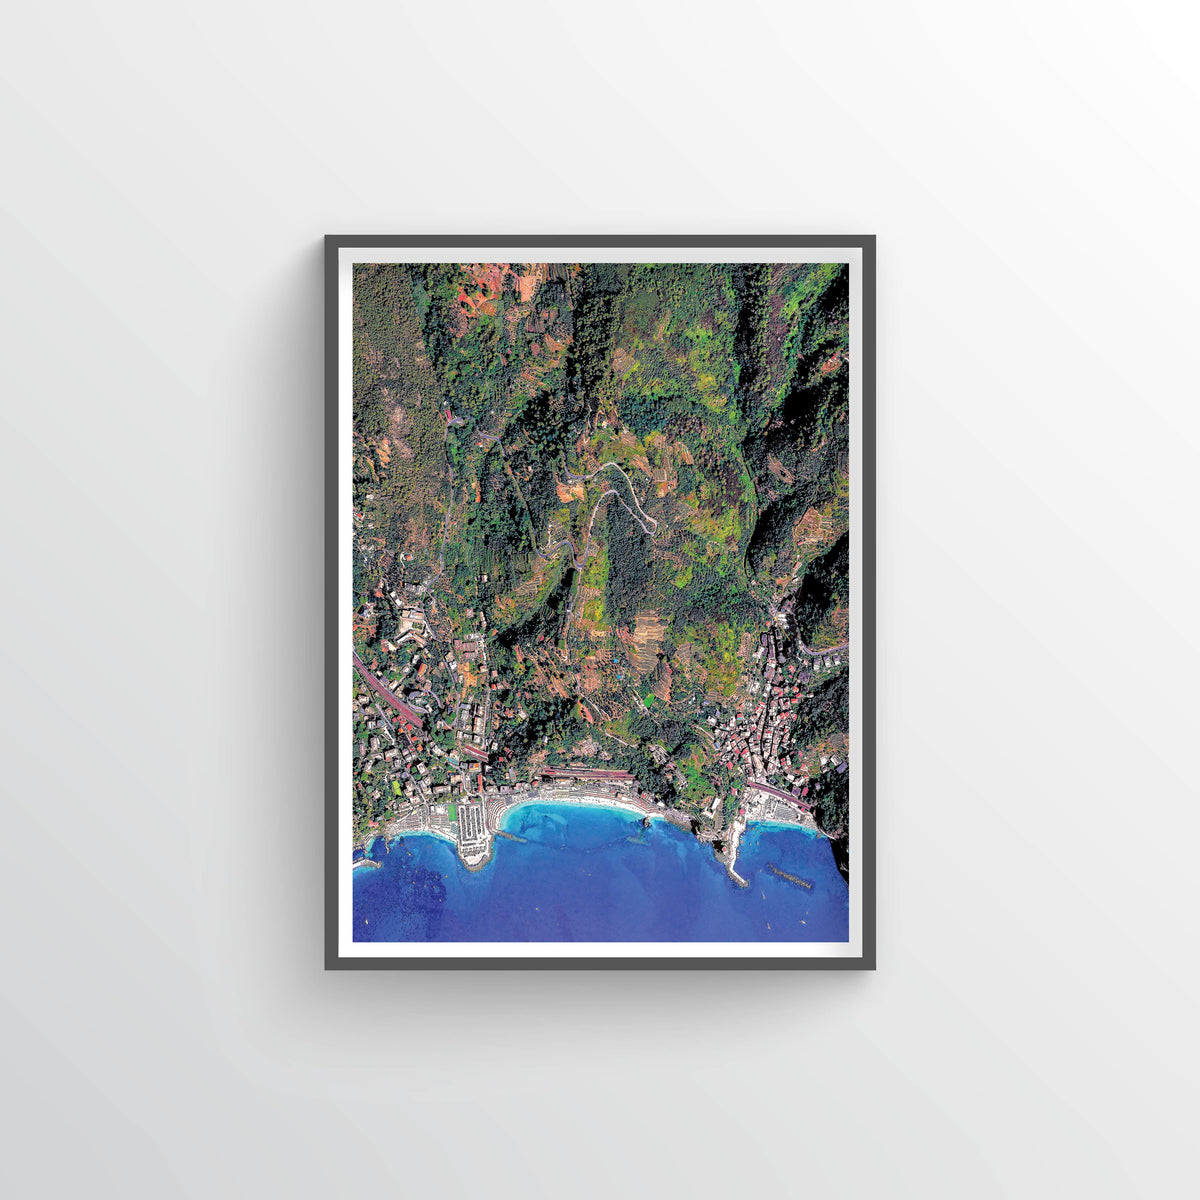 Cinque Terre Earth Photography - Art Print - Point Two Design